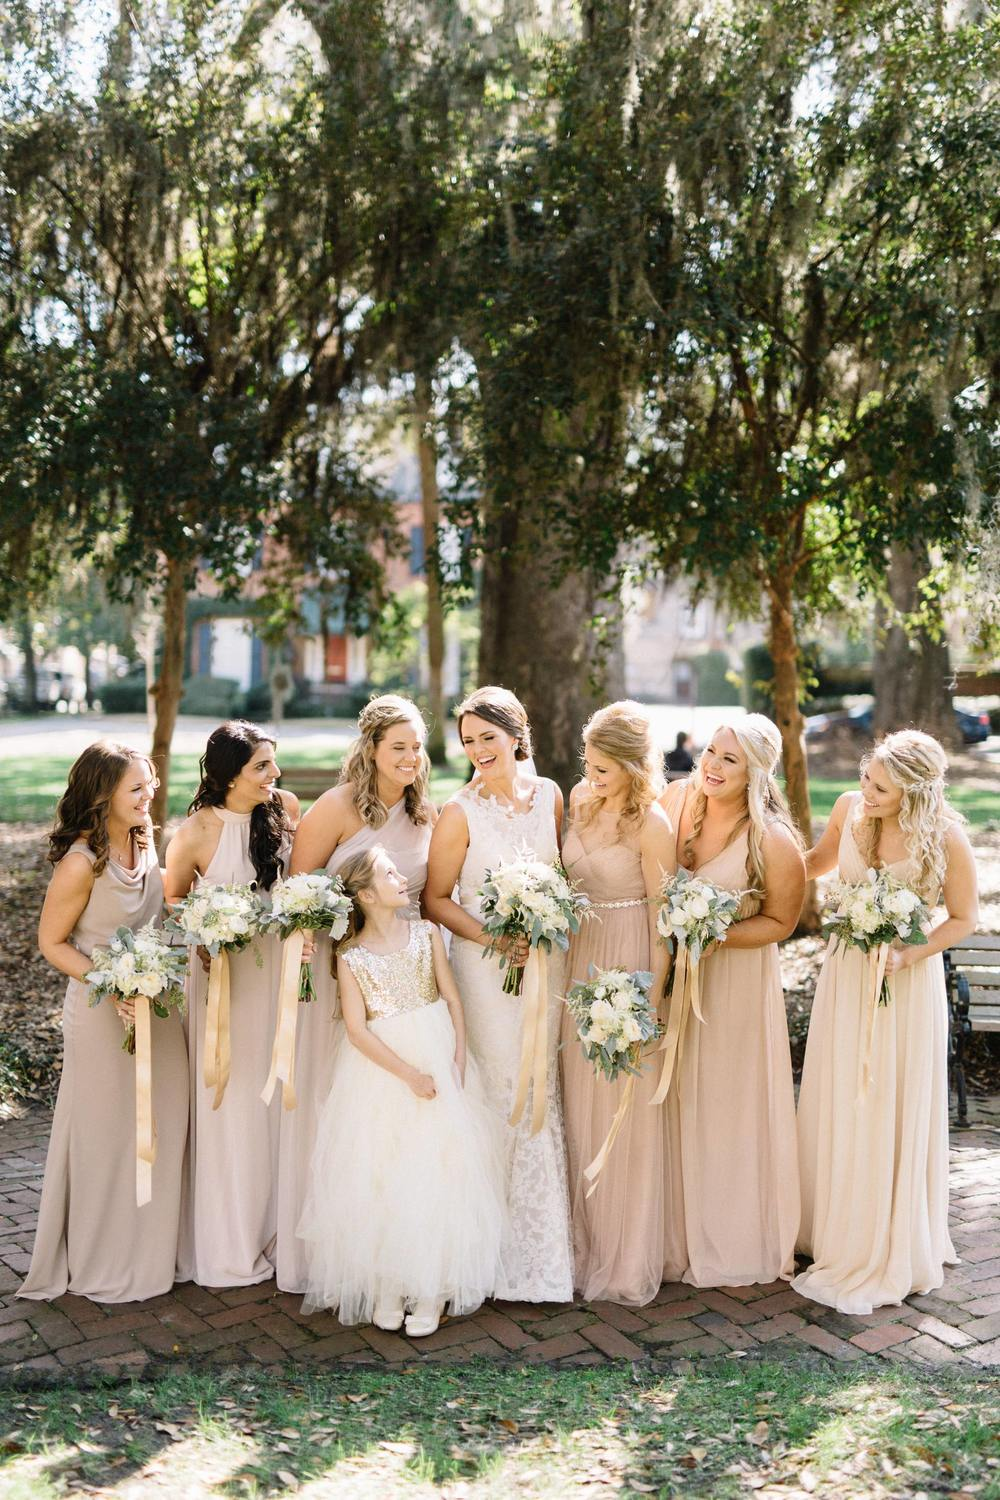 ivory-and-beau-bridal-boutique-southern-weddings-magazine-real-southern-wedding-elaya-vaughn-kate-pankoke-brian-flint-photography-savannah-wedding-historic-wedding-wilmington-island-wedding-blush-bridemaids-8.jpg